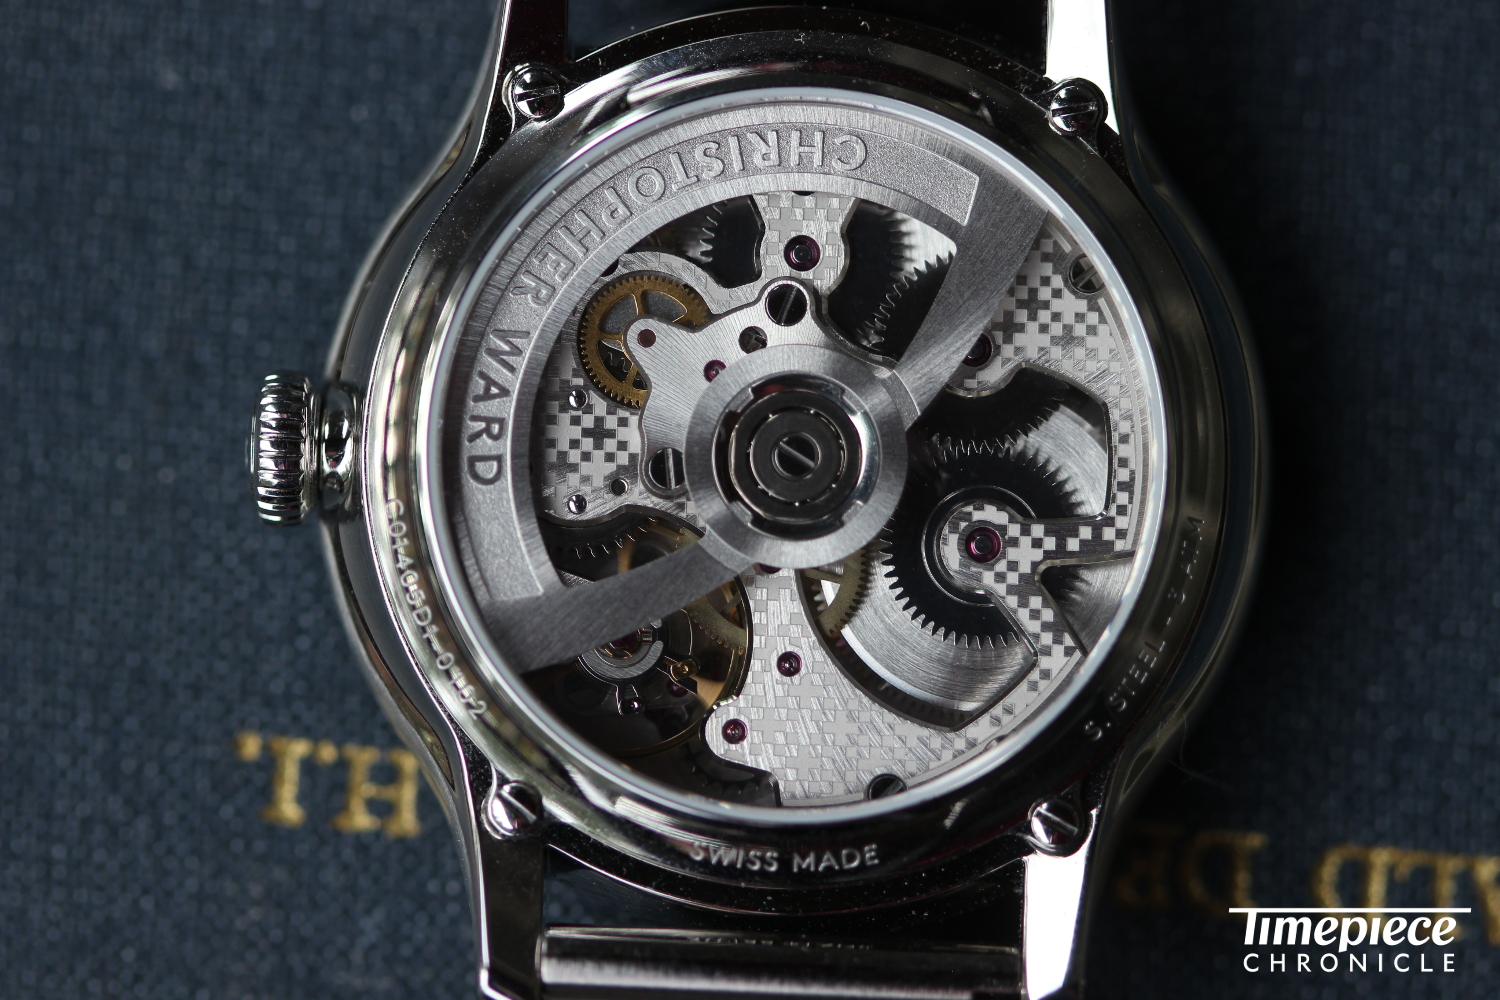 Christopher Ward 5 Day Automatic movement 4.JPG